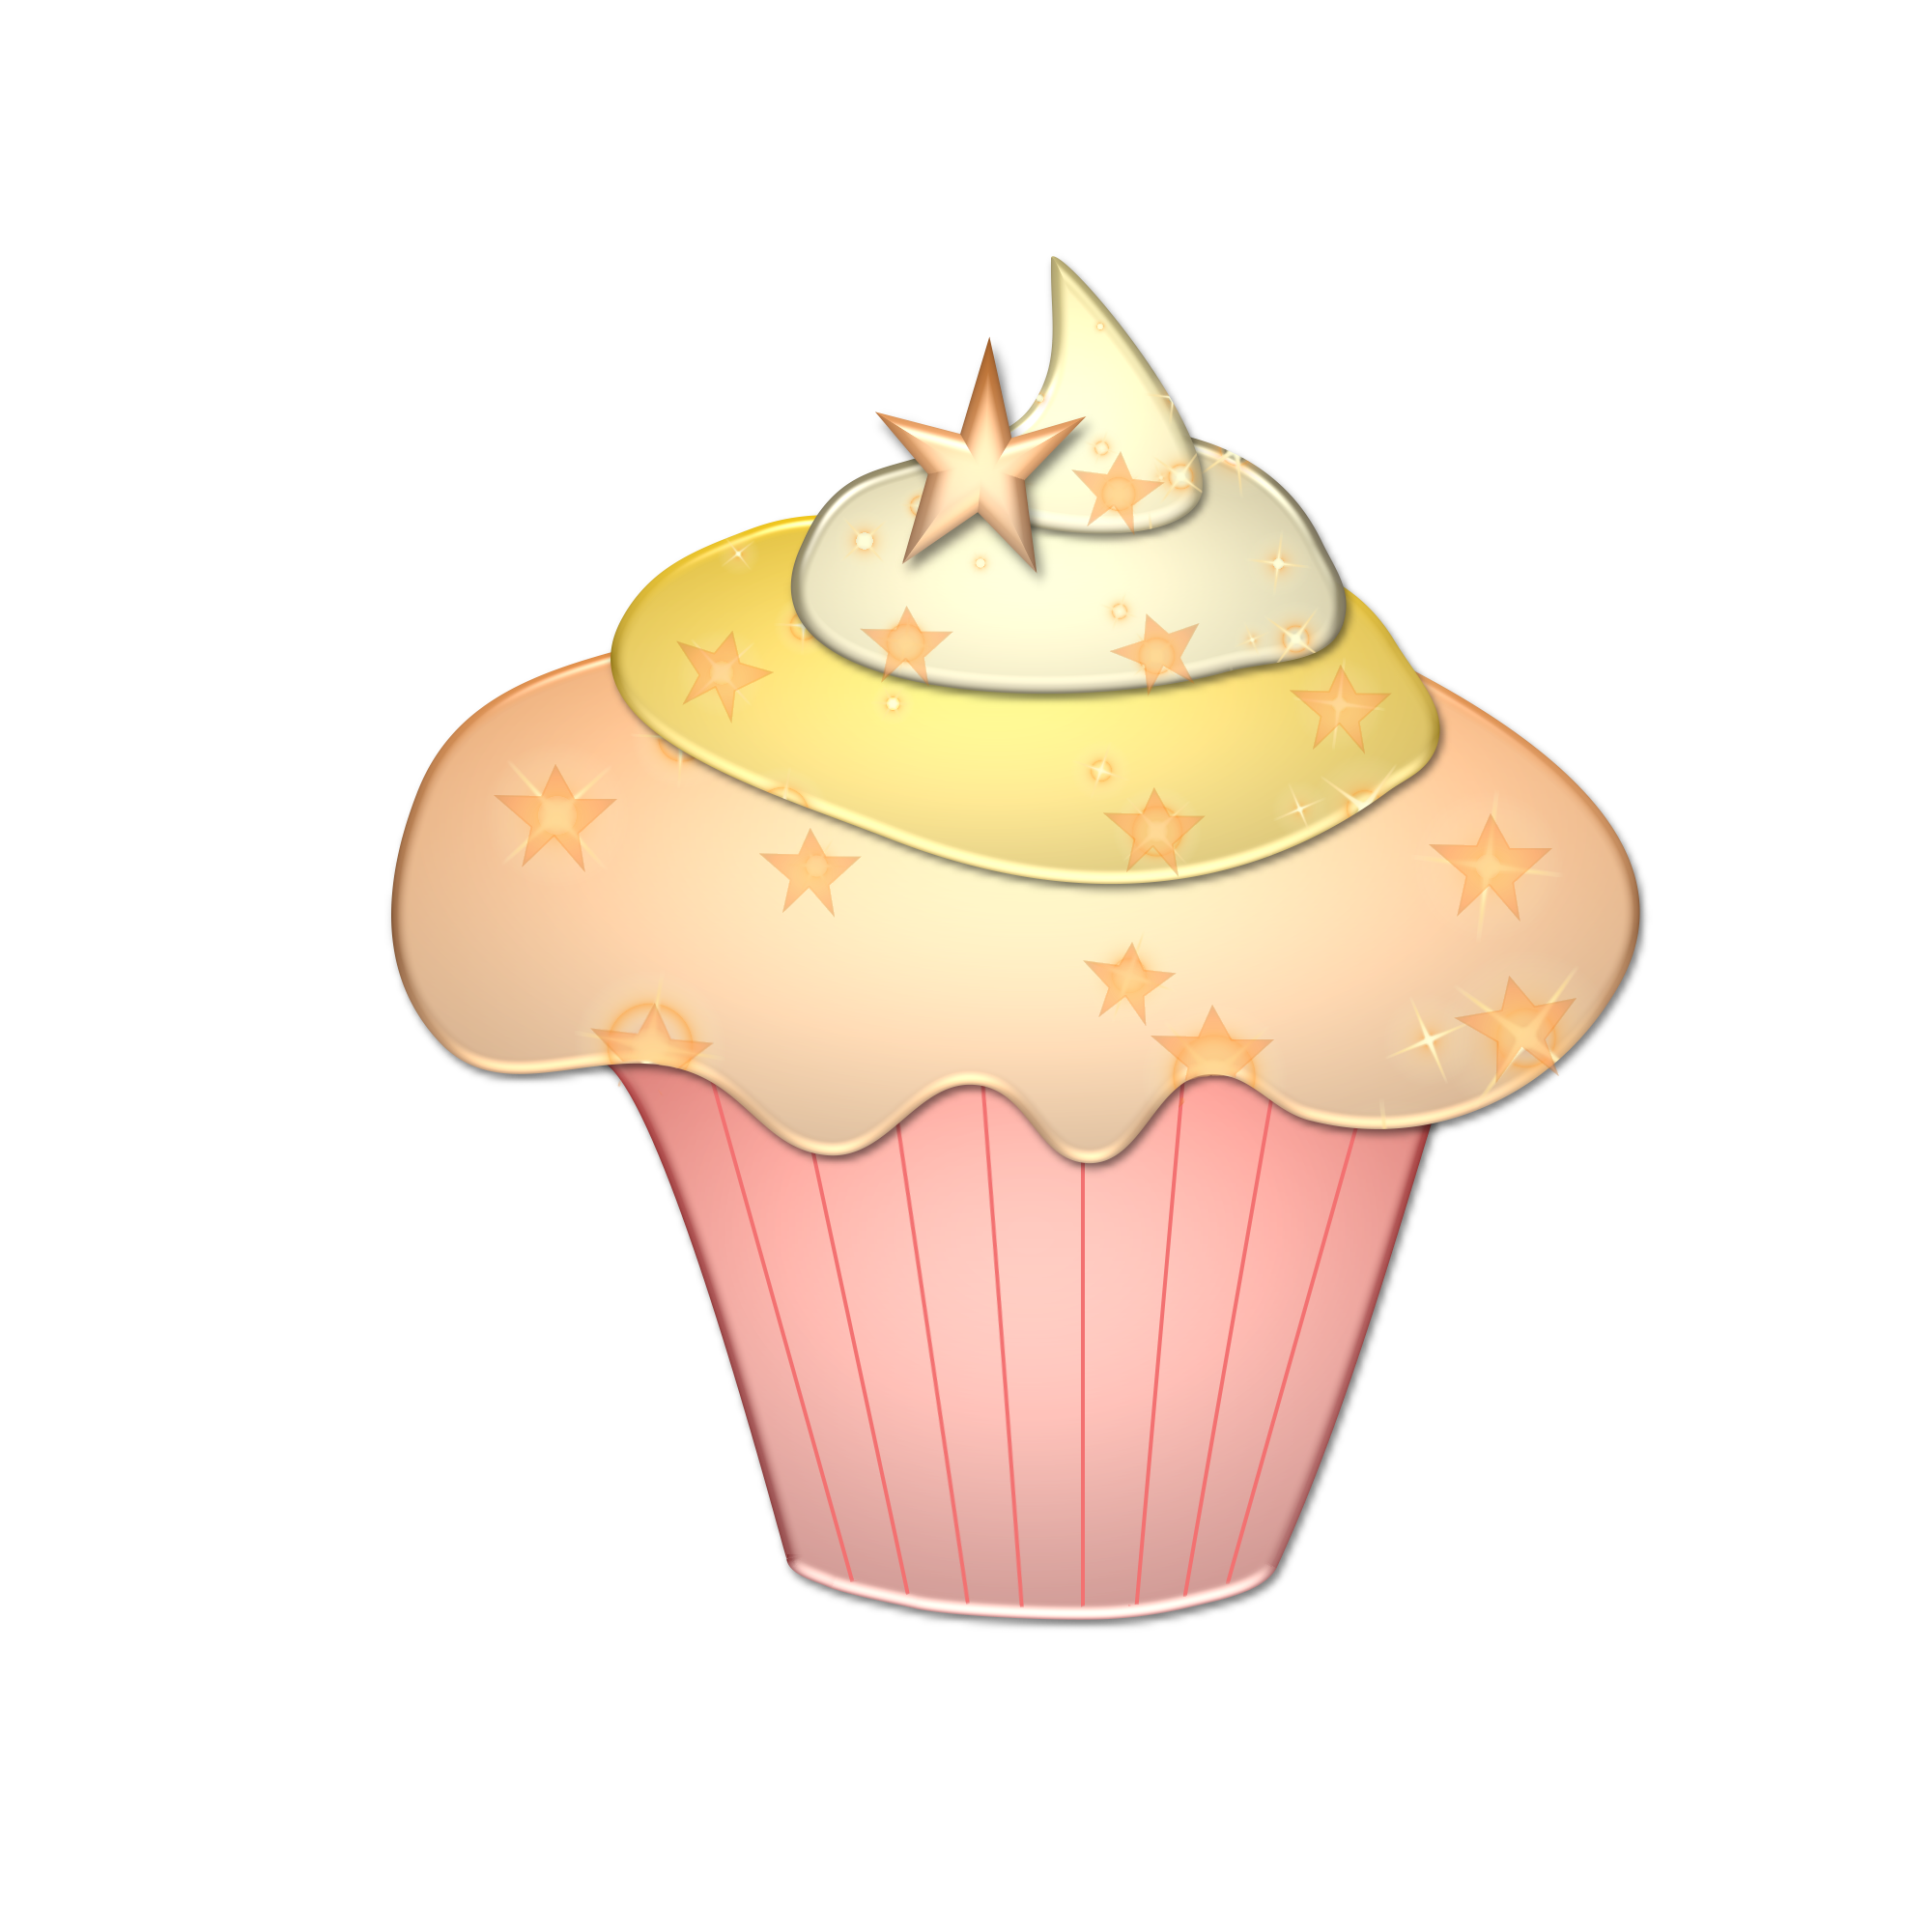 Freebie pink star image. Holiday clipart cupcake